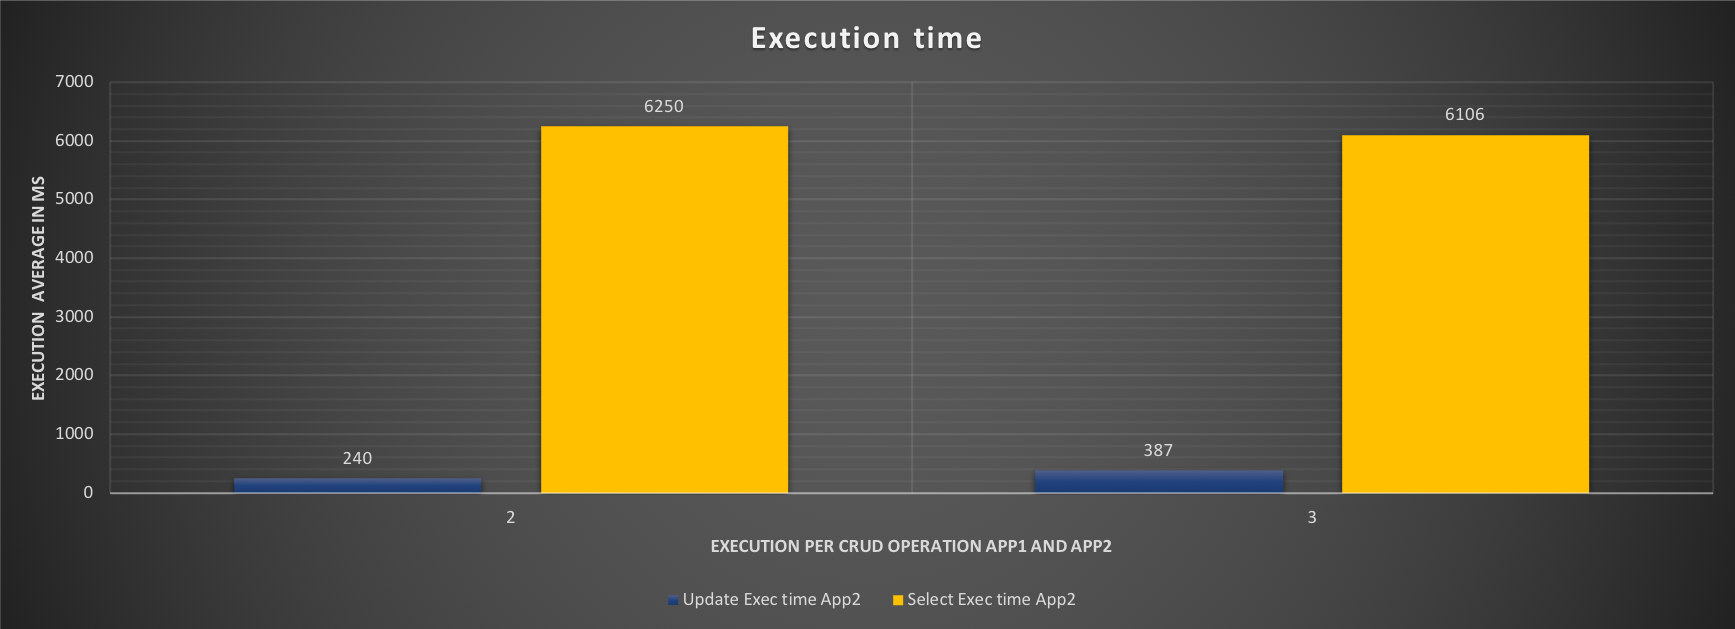 execution_time3